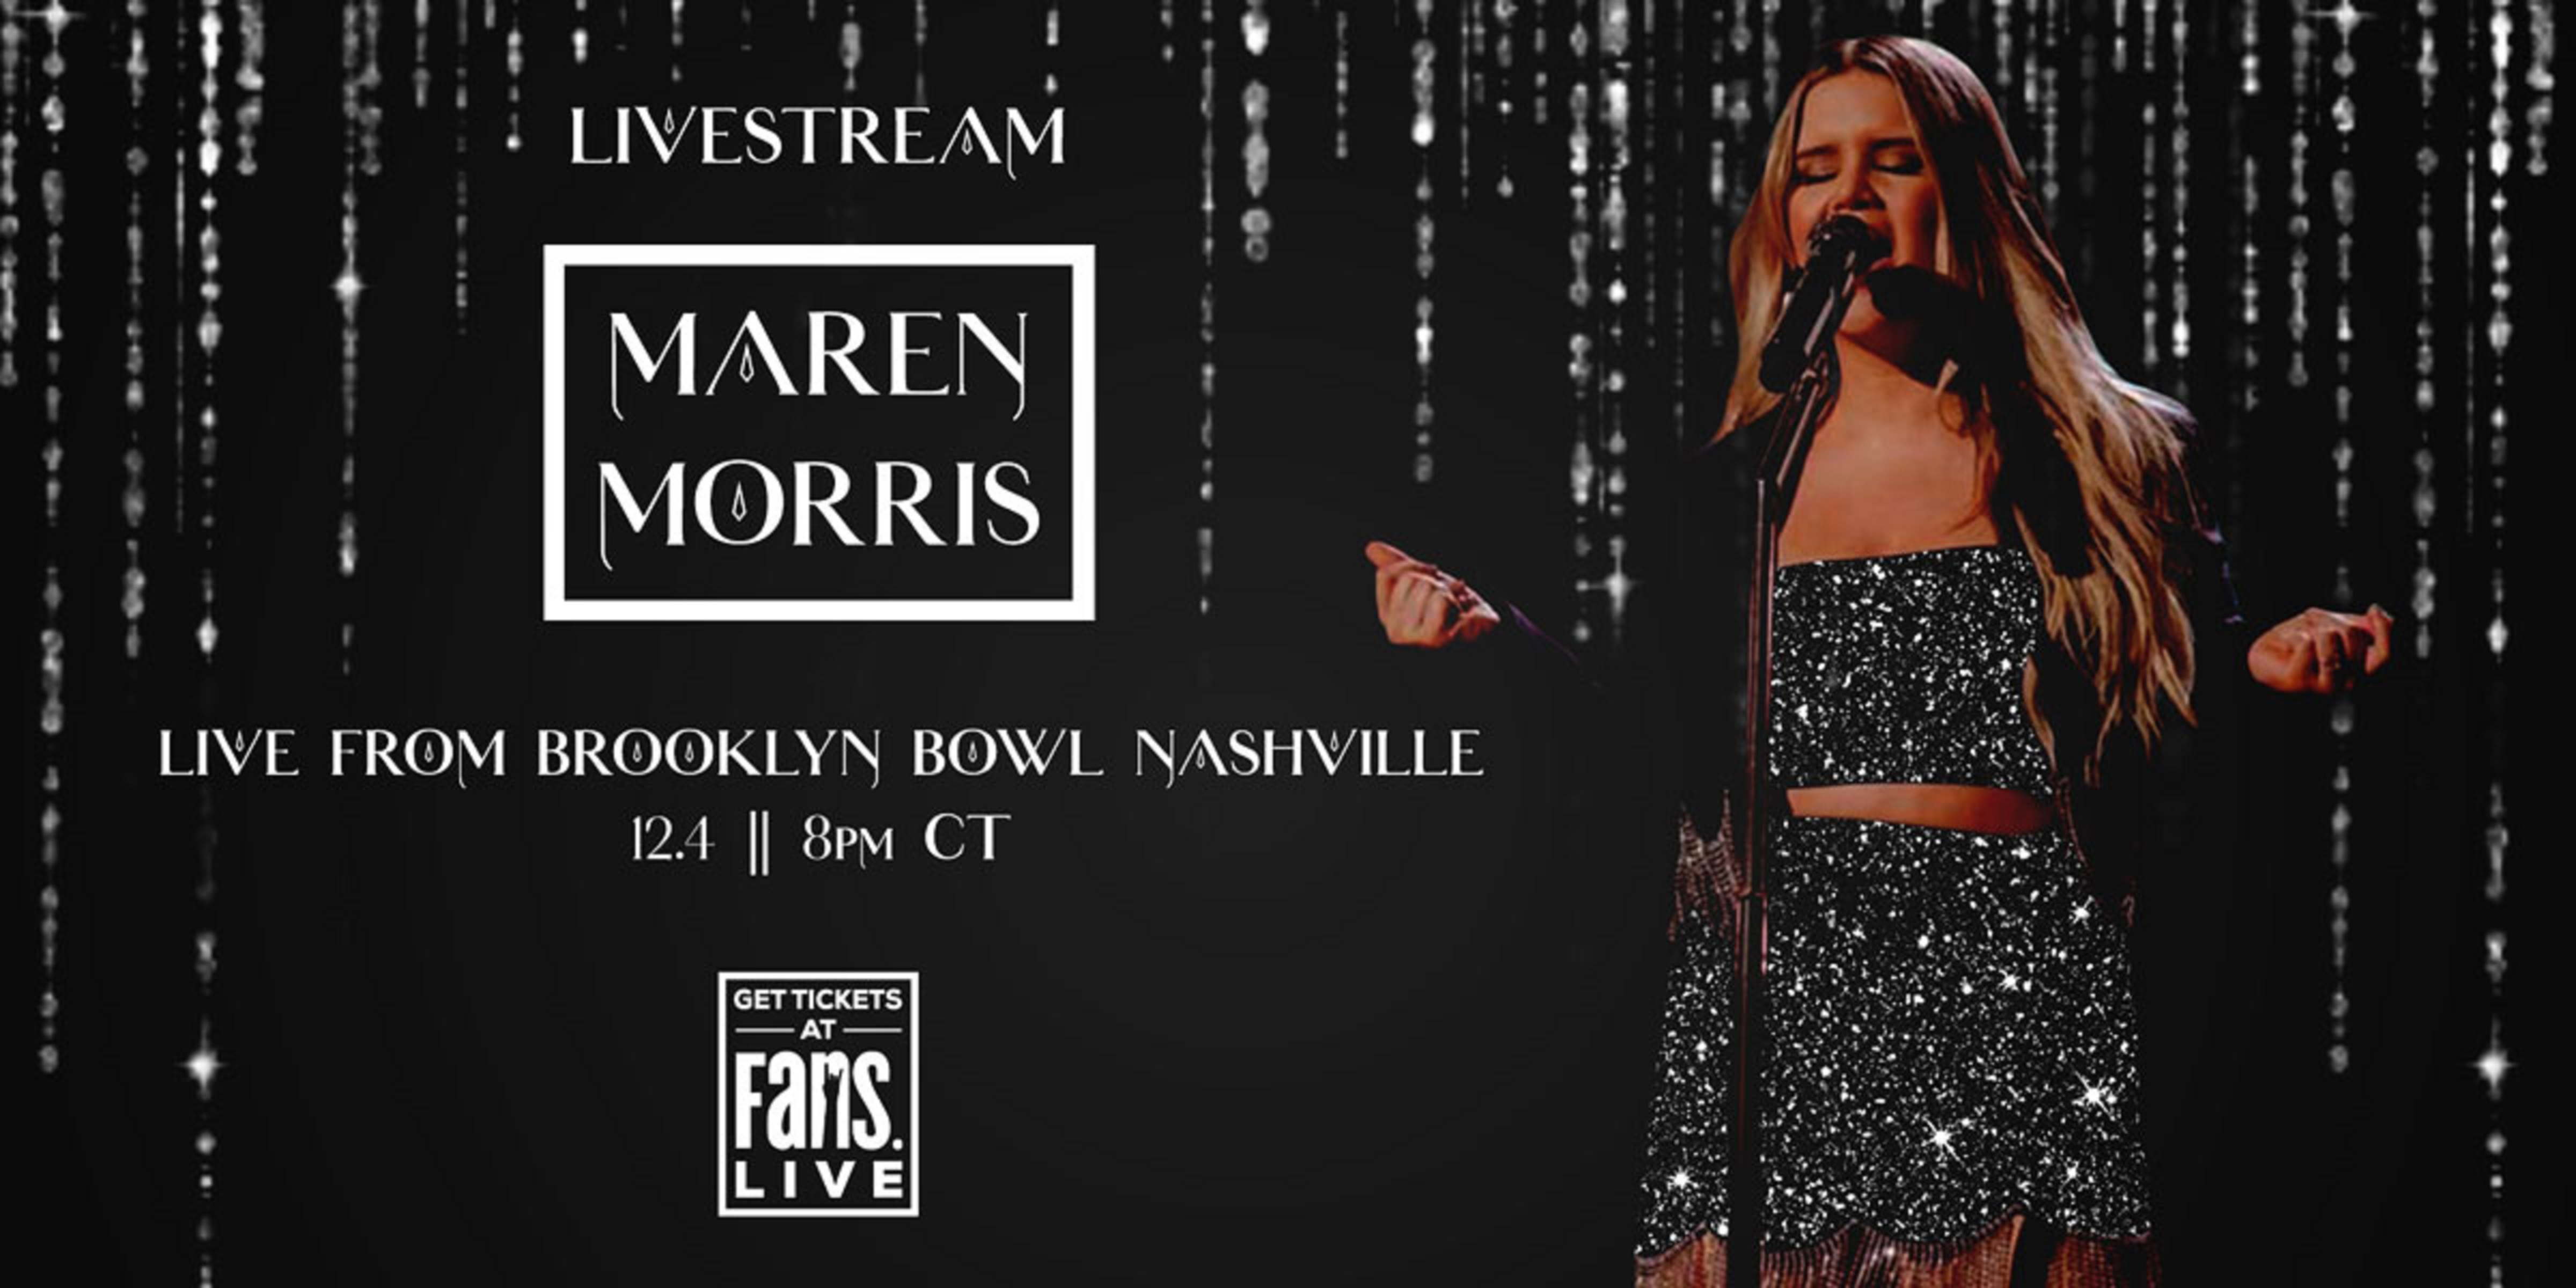 Maren Morris Livestreaming from Brooklyn Bowl Nashville